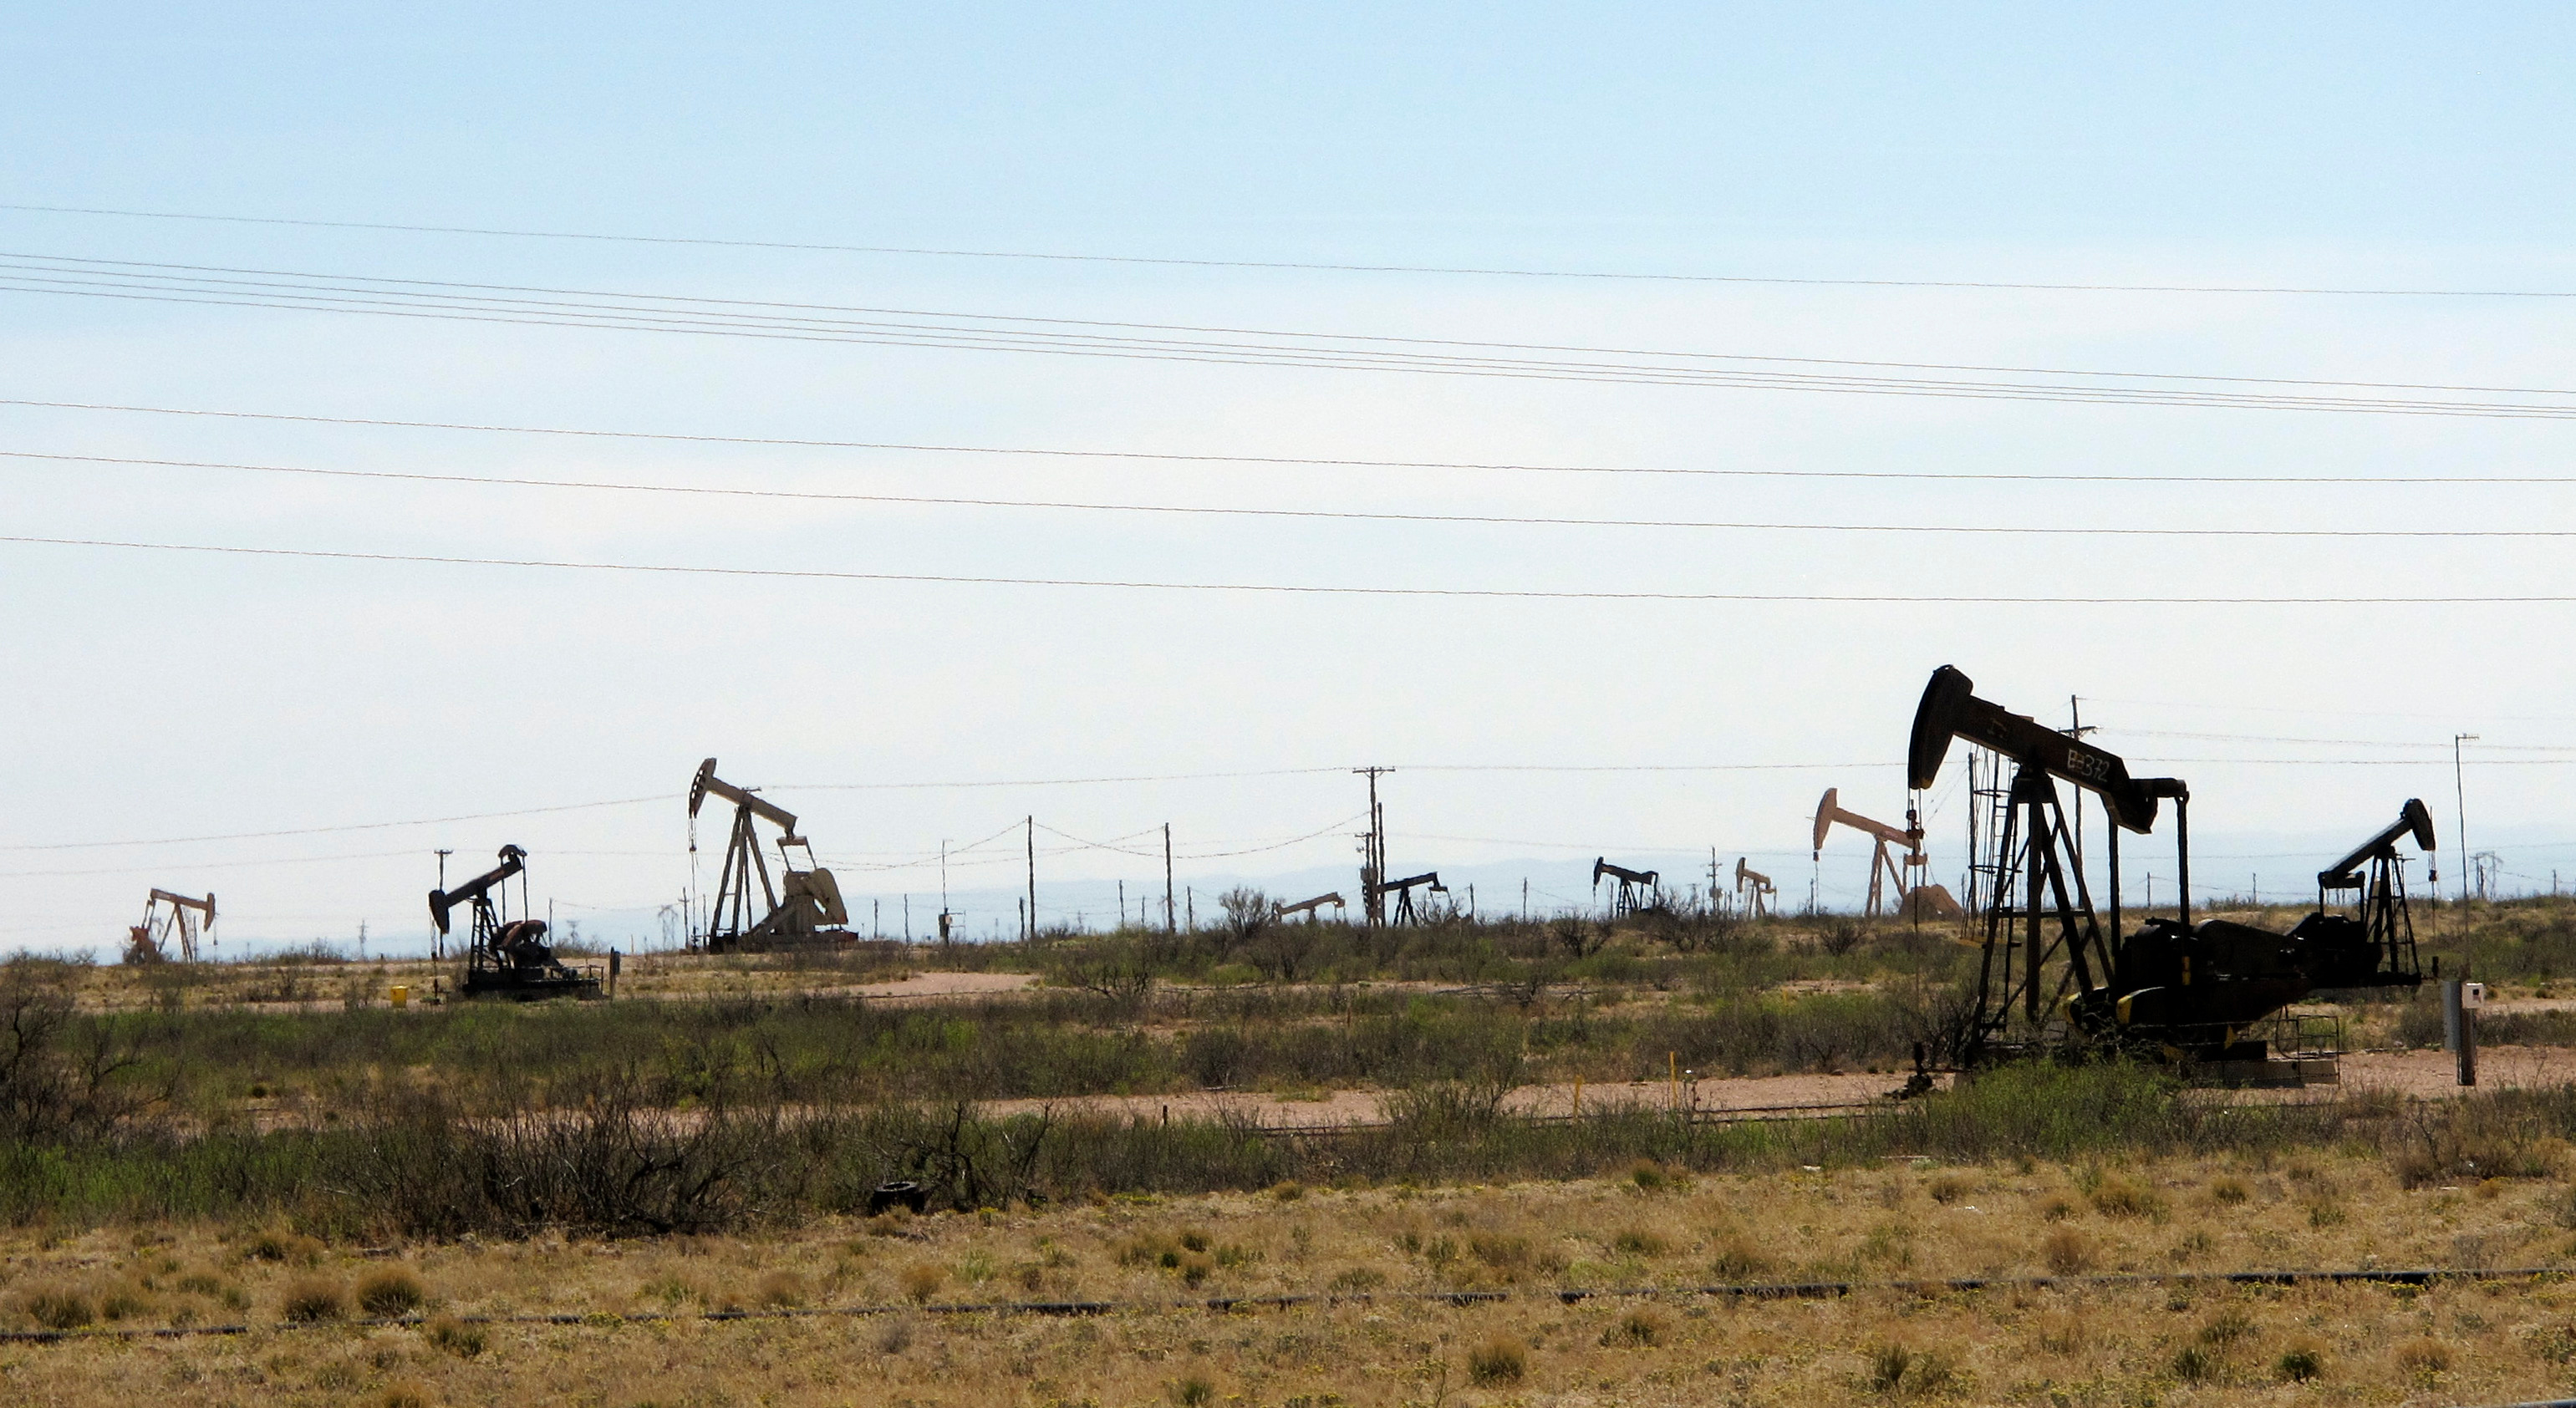 This photo shows oil rigs in the Loco Hills field in Eddy County, near Artesia, New Mexico, on April 9, 2018. This is one of the most active regions of the Permian Basin, the home of the U.S. oil boom.